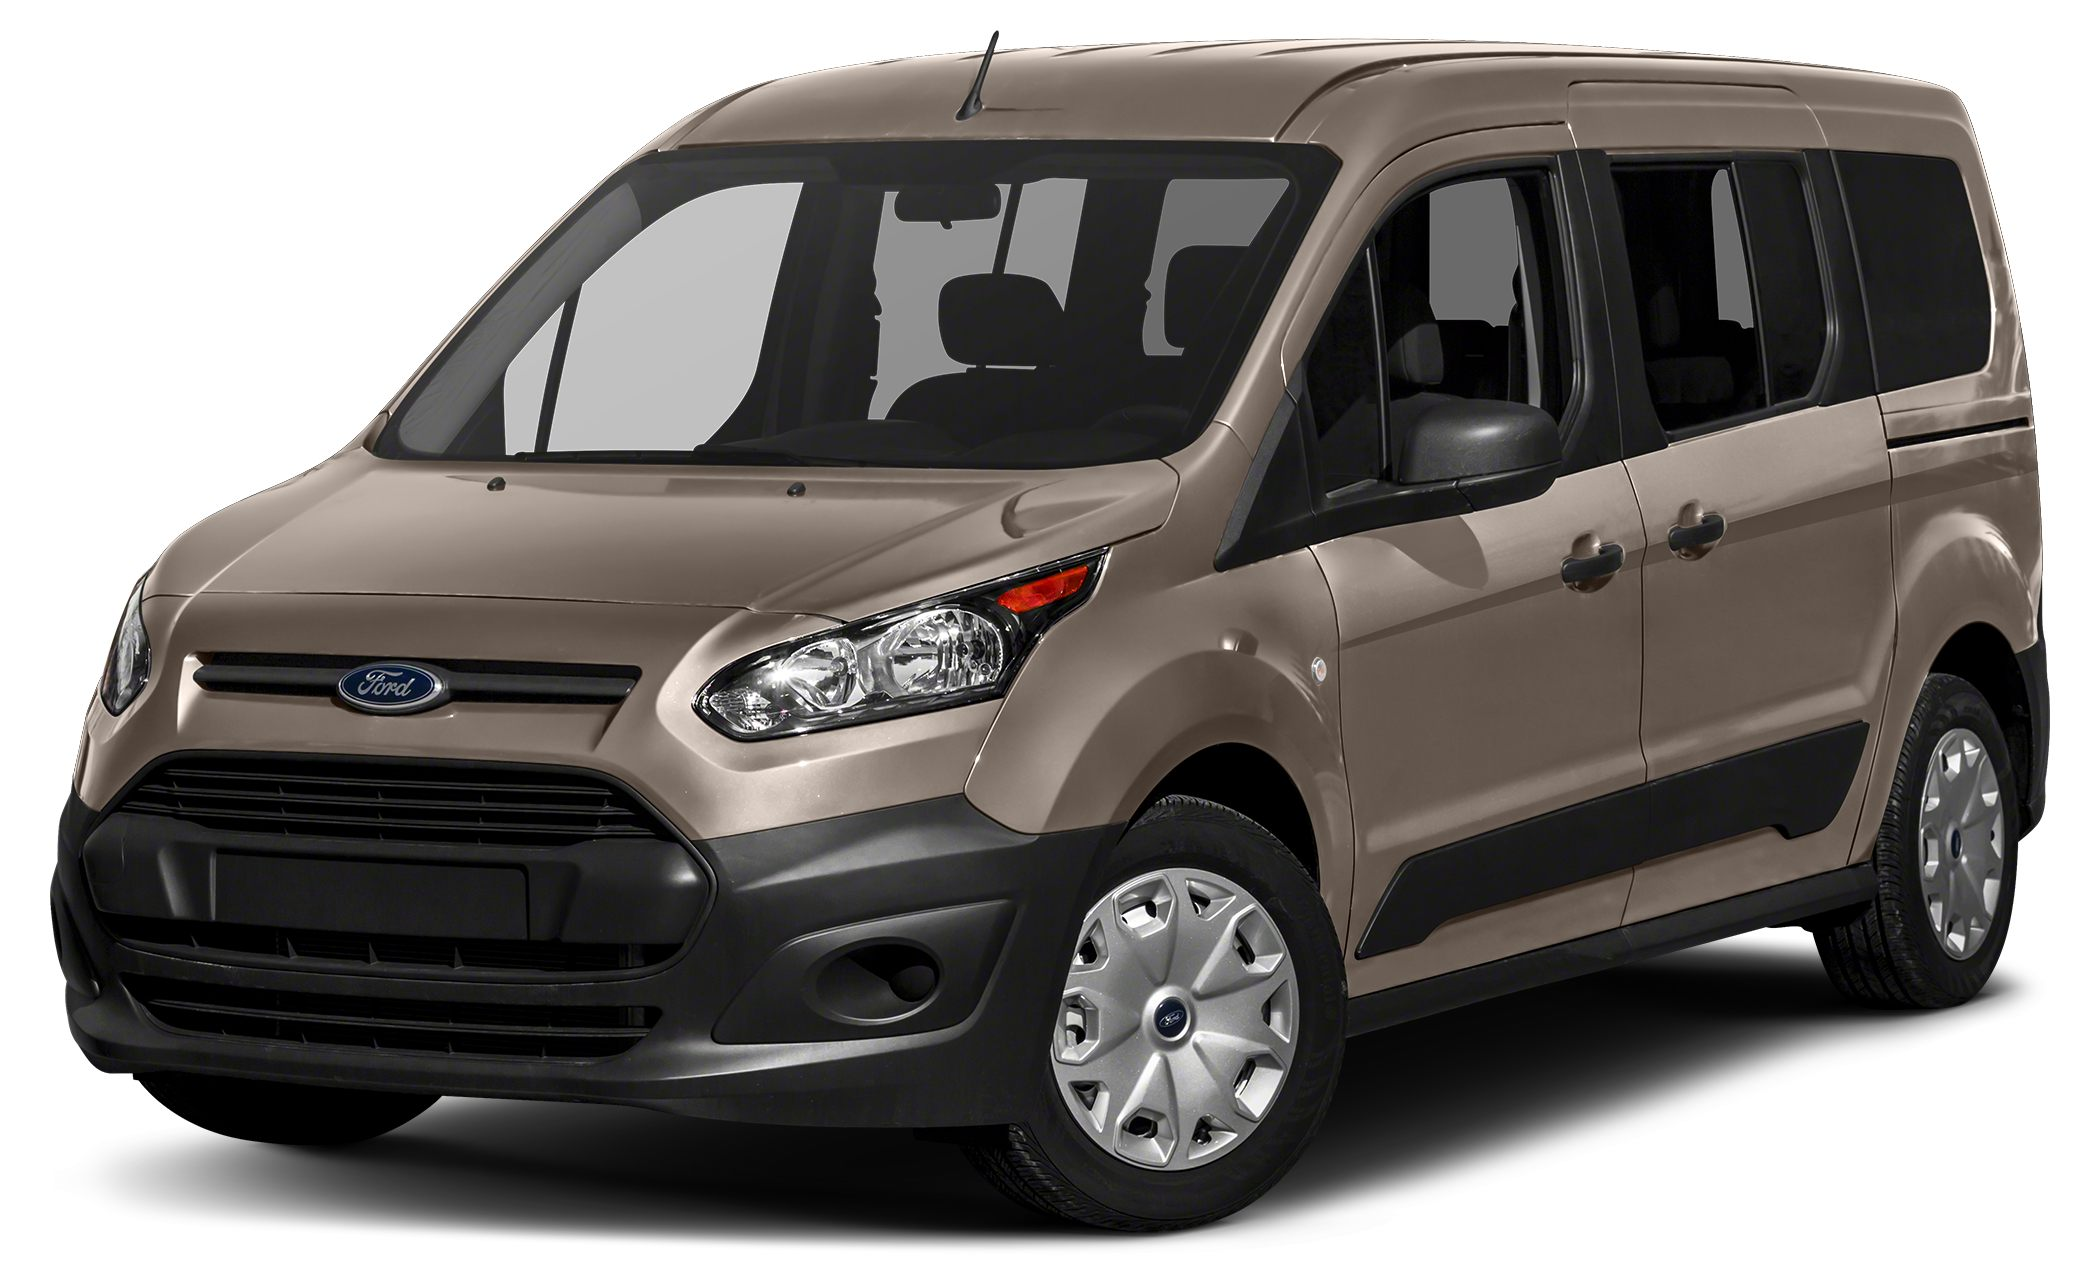 2016 Ford Transit Connect Titanium Recent Arrival 2016 Ford Transit Connect Titanium FWD 6-Speed